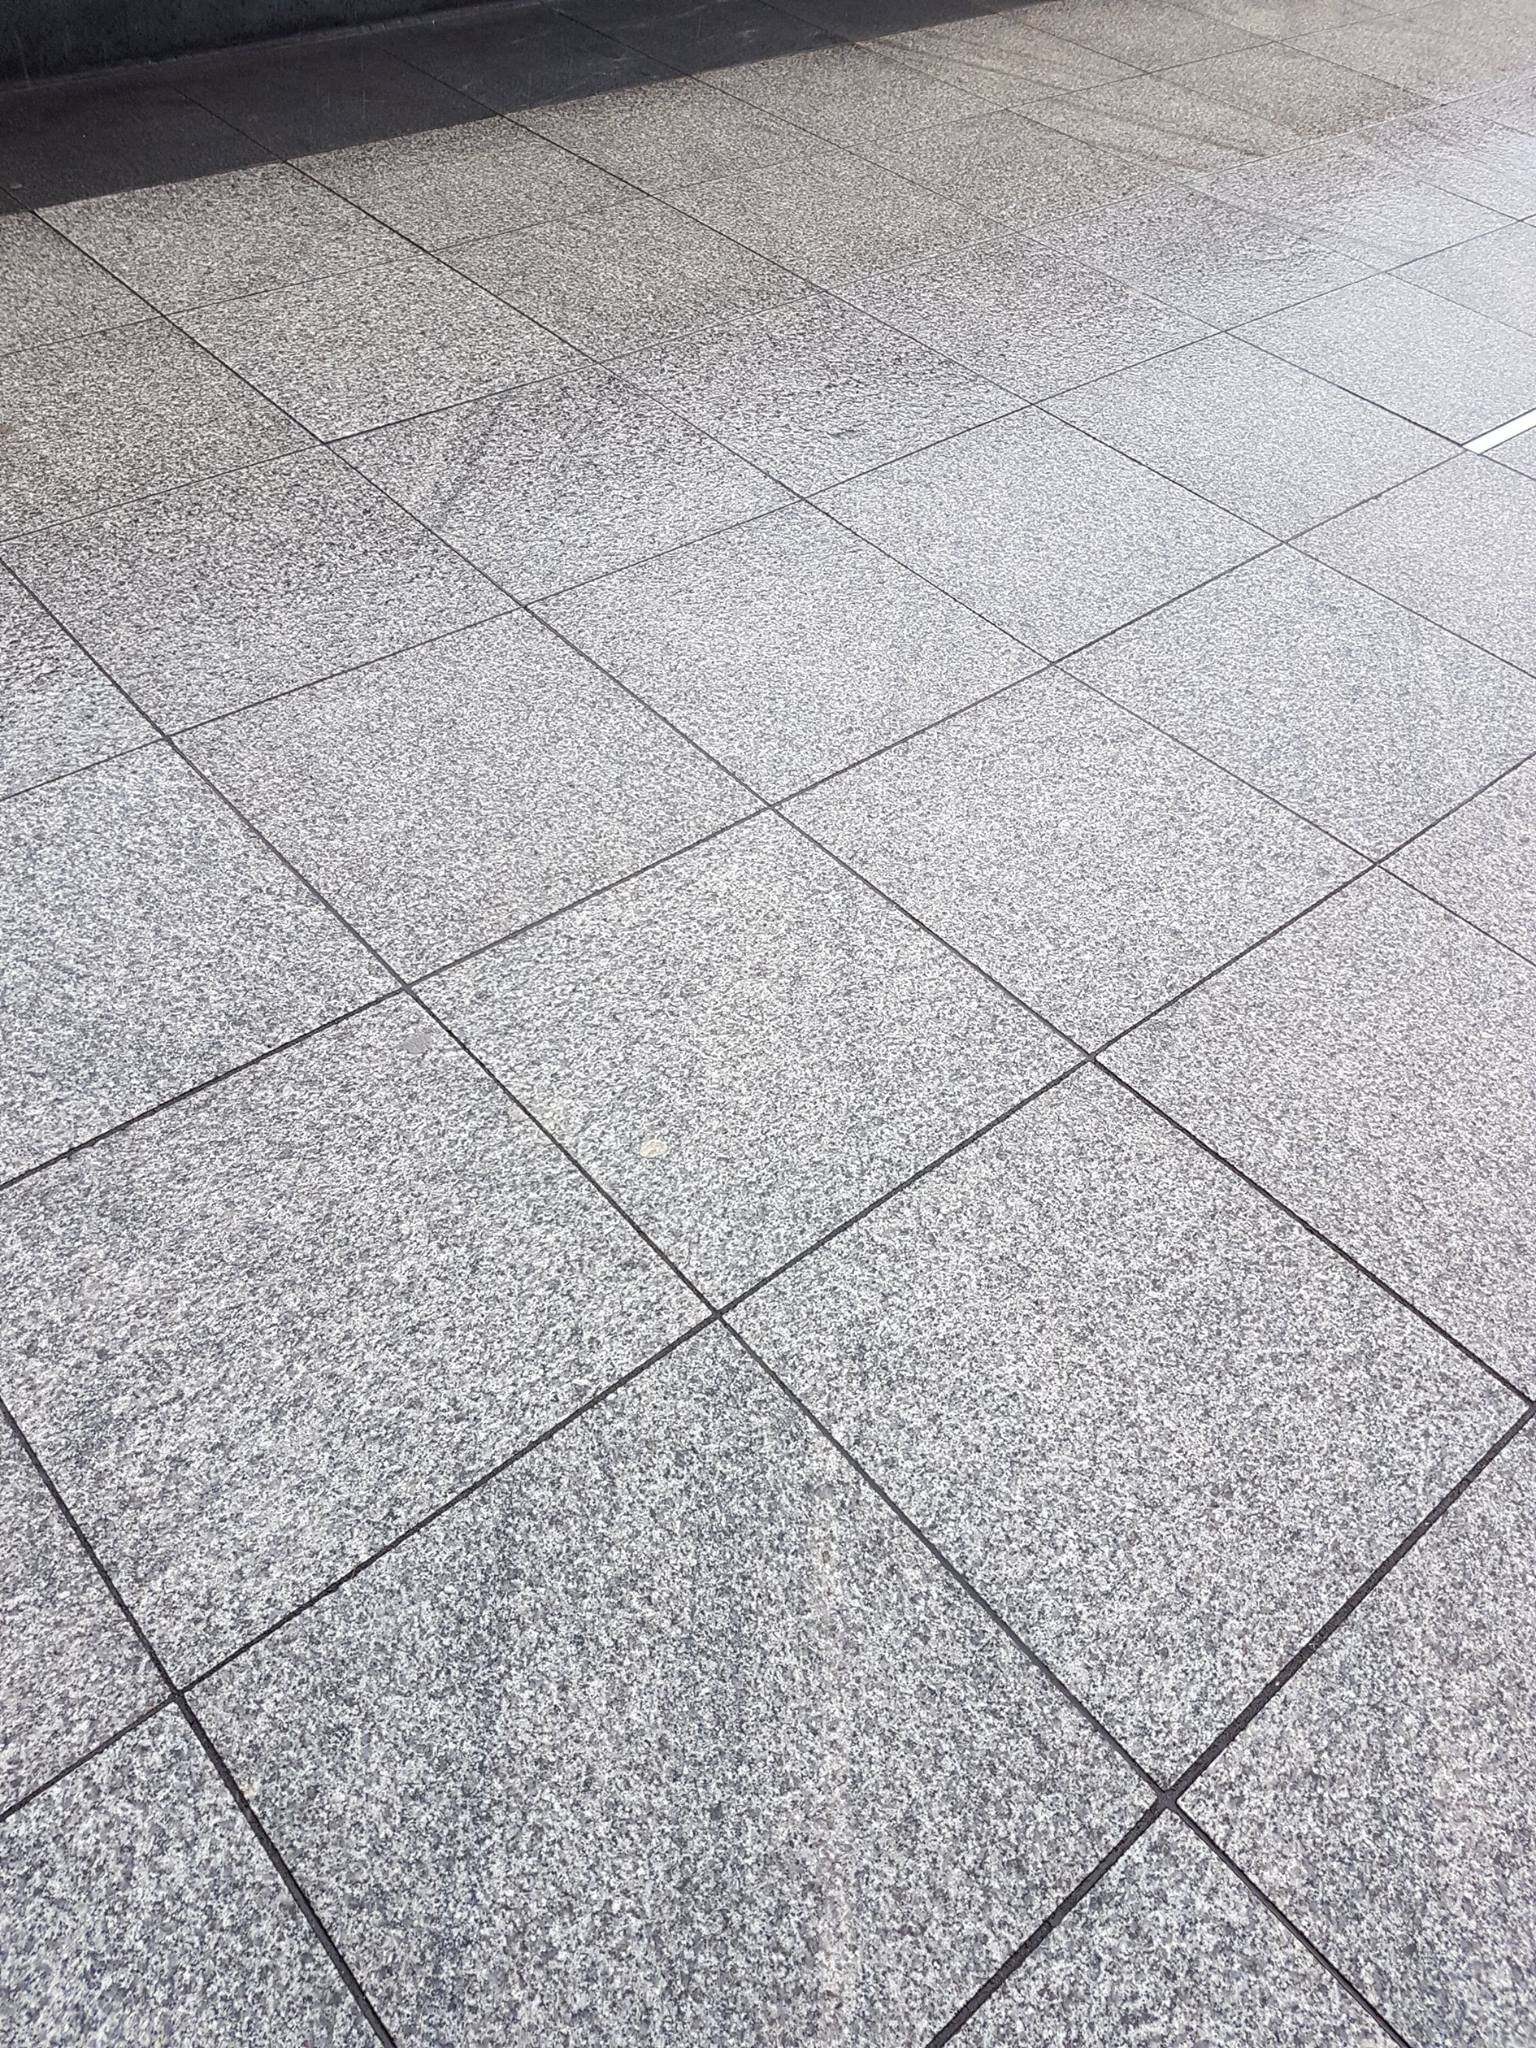 Grey Granite Slabs : Light grey granite slabs